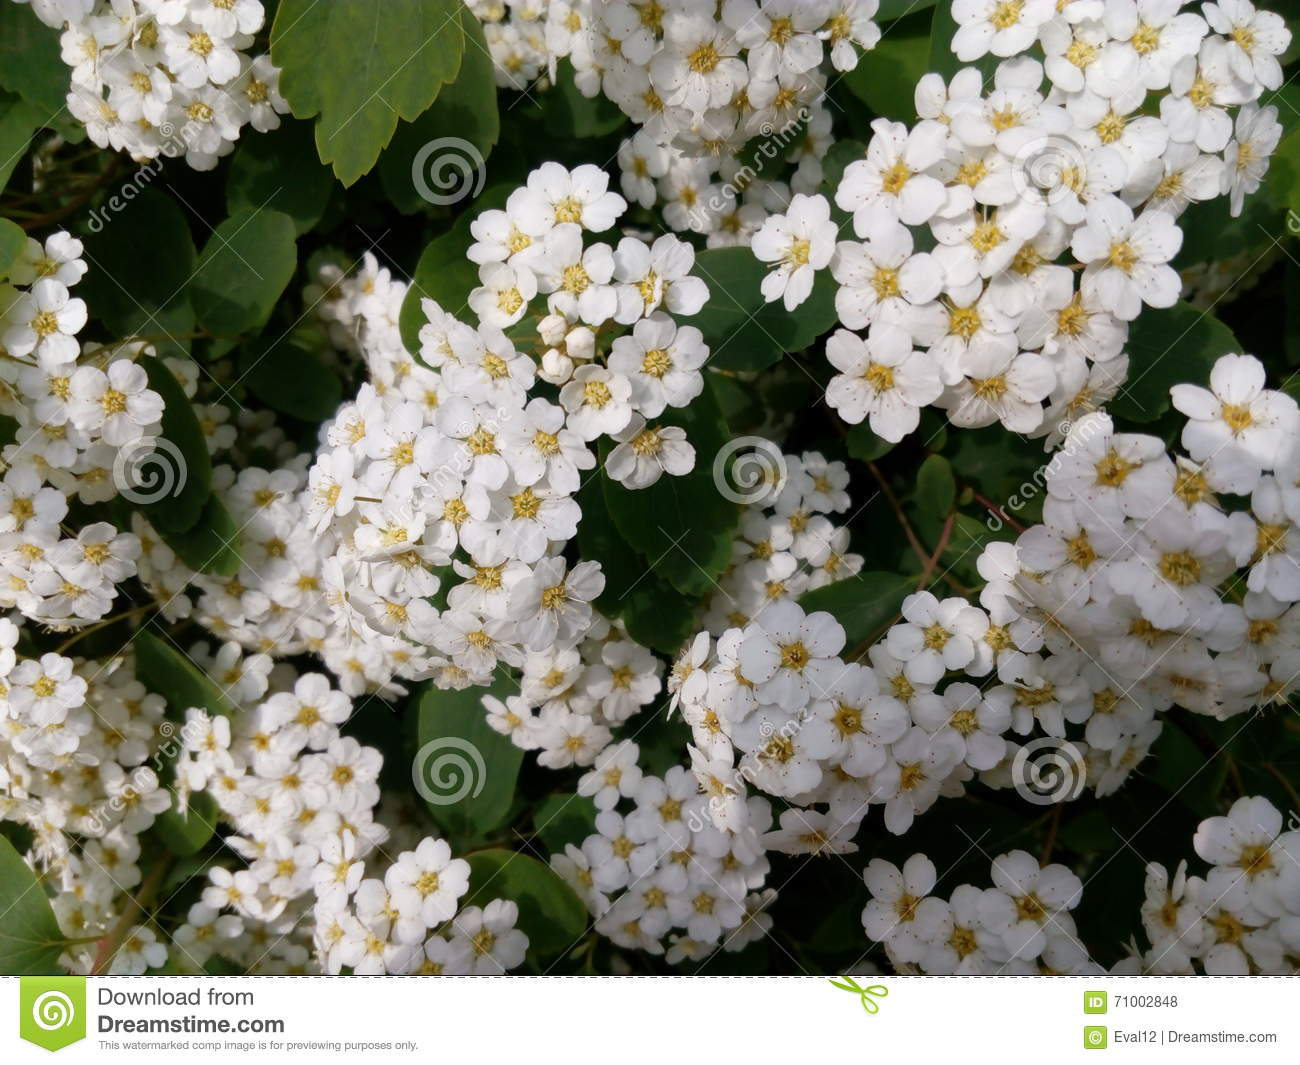 White small flowers on a green bush close up stock photo image of white small flowers on a green bush close up mightylinksfo